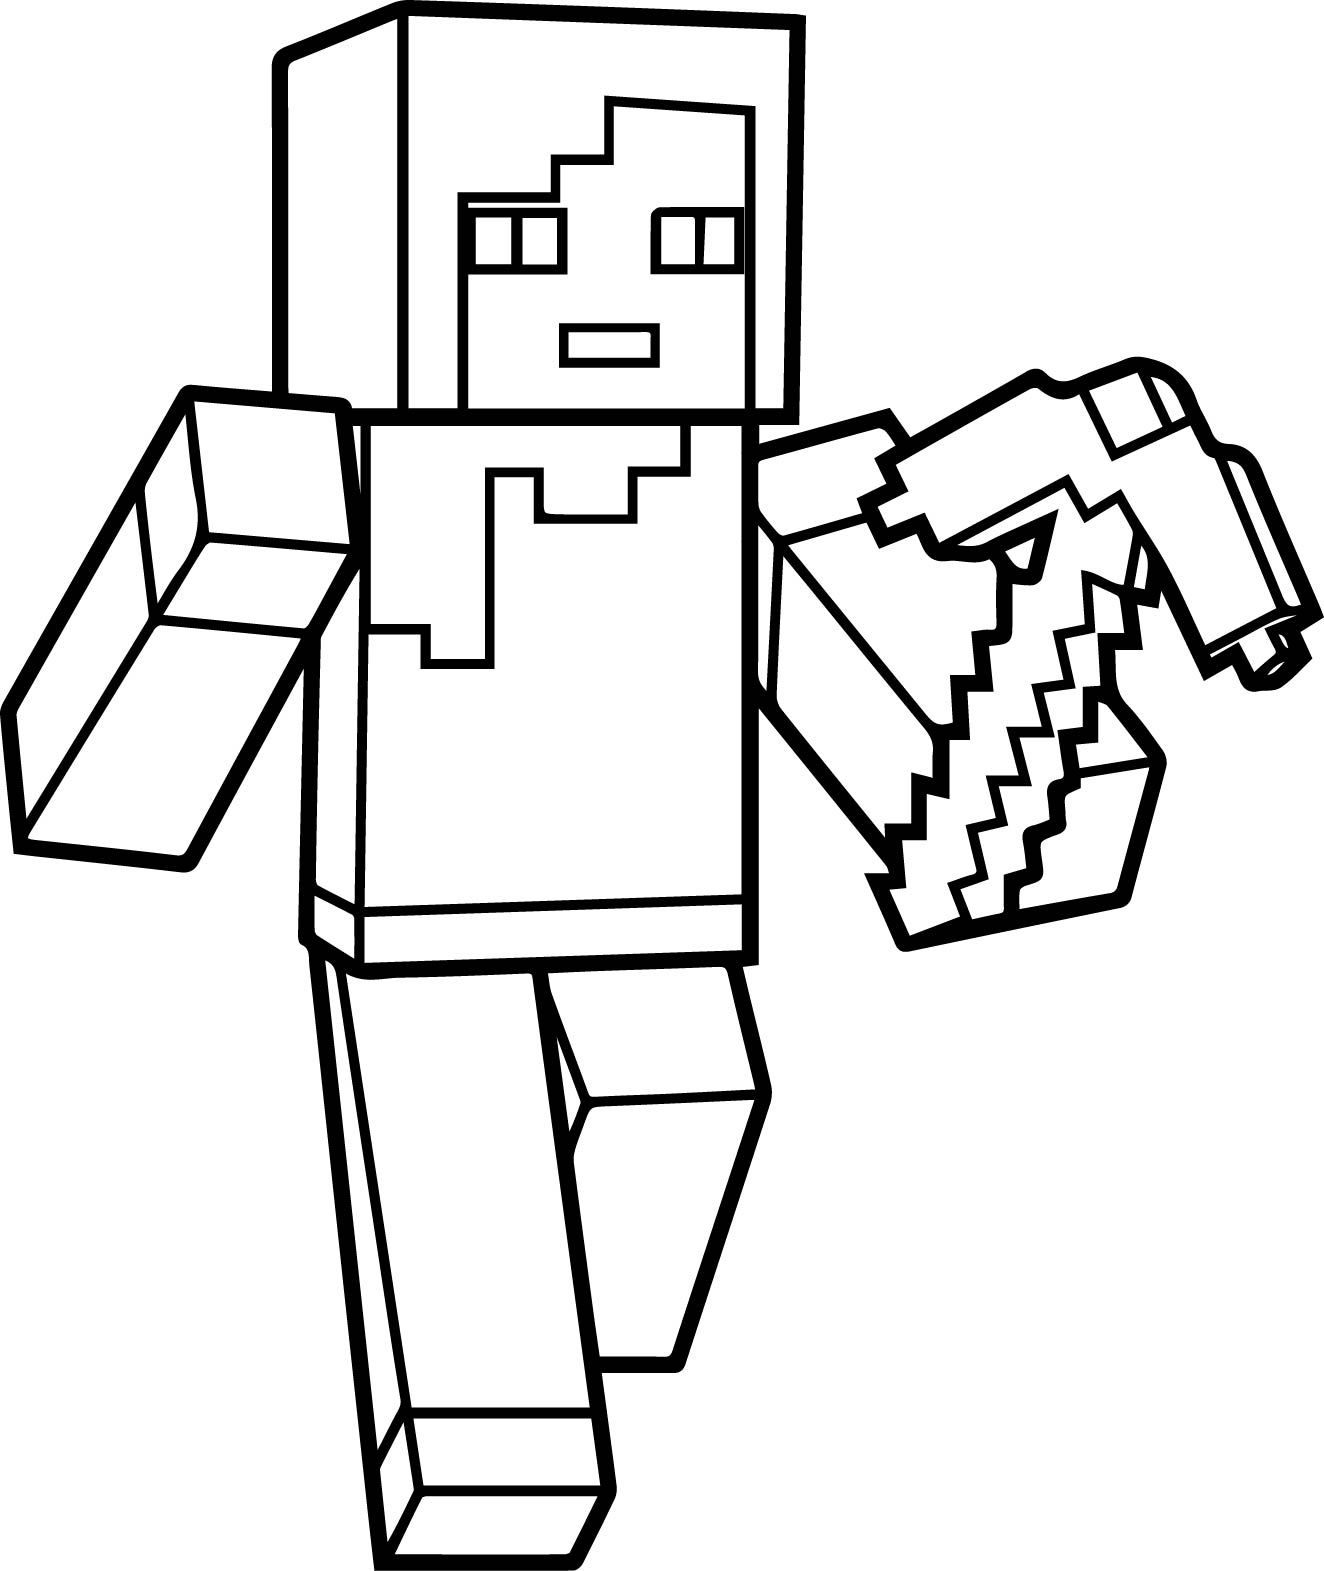 Fun Minecraft Coloring Pages Ideas For Kids Minecraft Coloring Pages Minecraft Printables Coloring Pages